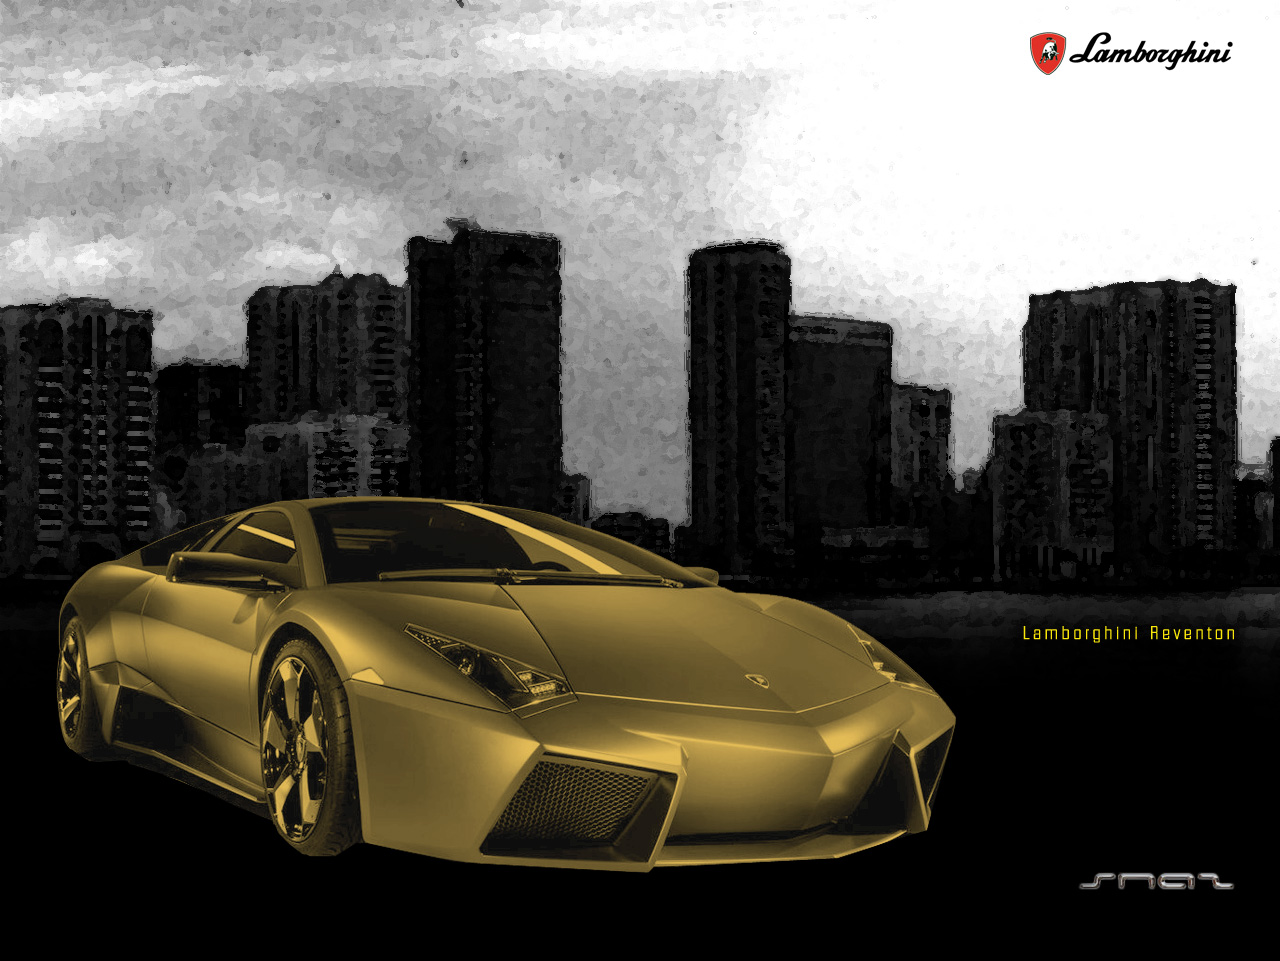 lamborghini reventon image wallpaper - photo #28